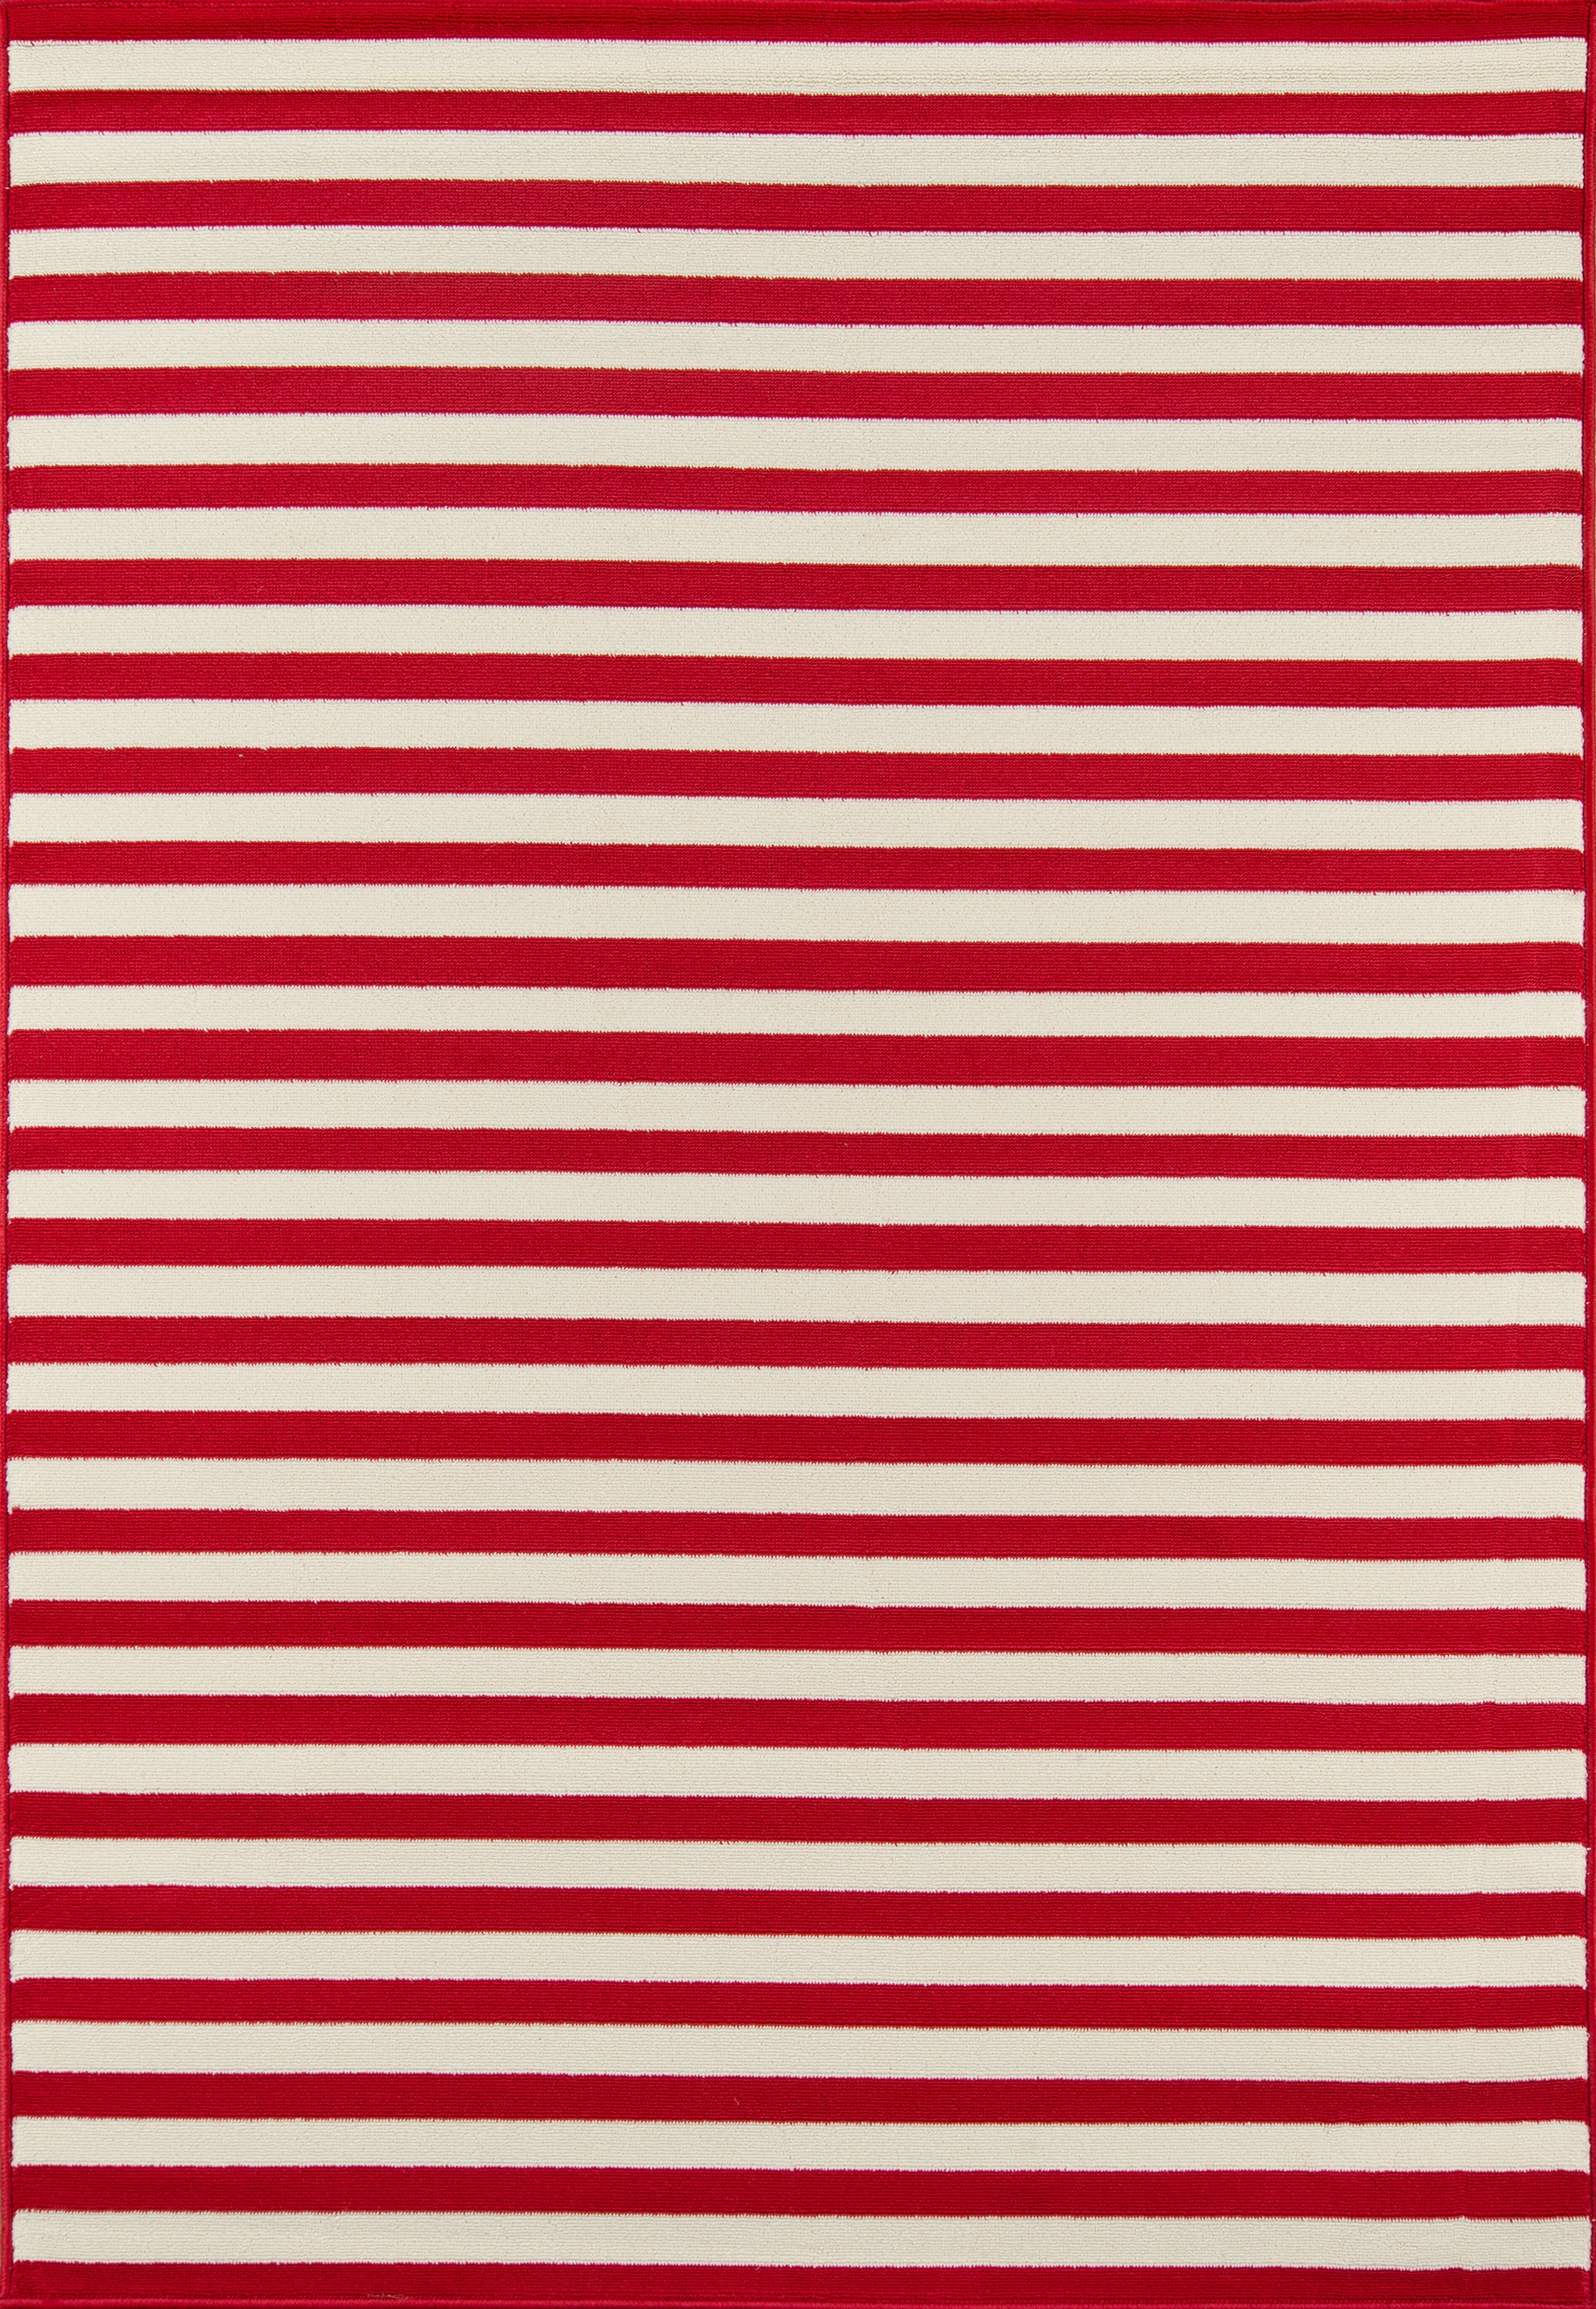 Rectangle 53x76 Red Striped Machine Made Synthetics Contemporary recommended for Kitchen, Bedroom, Bathroom, Outdoor, Dining Room, Office, Hallway, Living Room